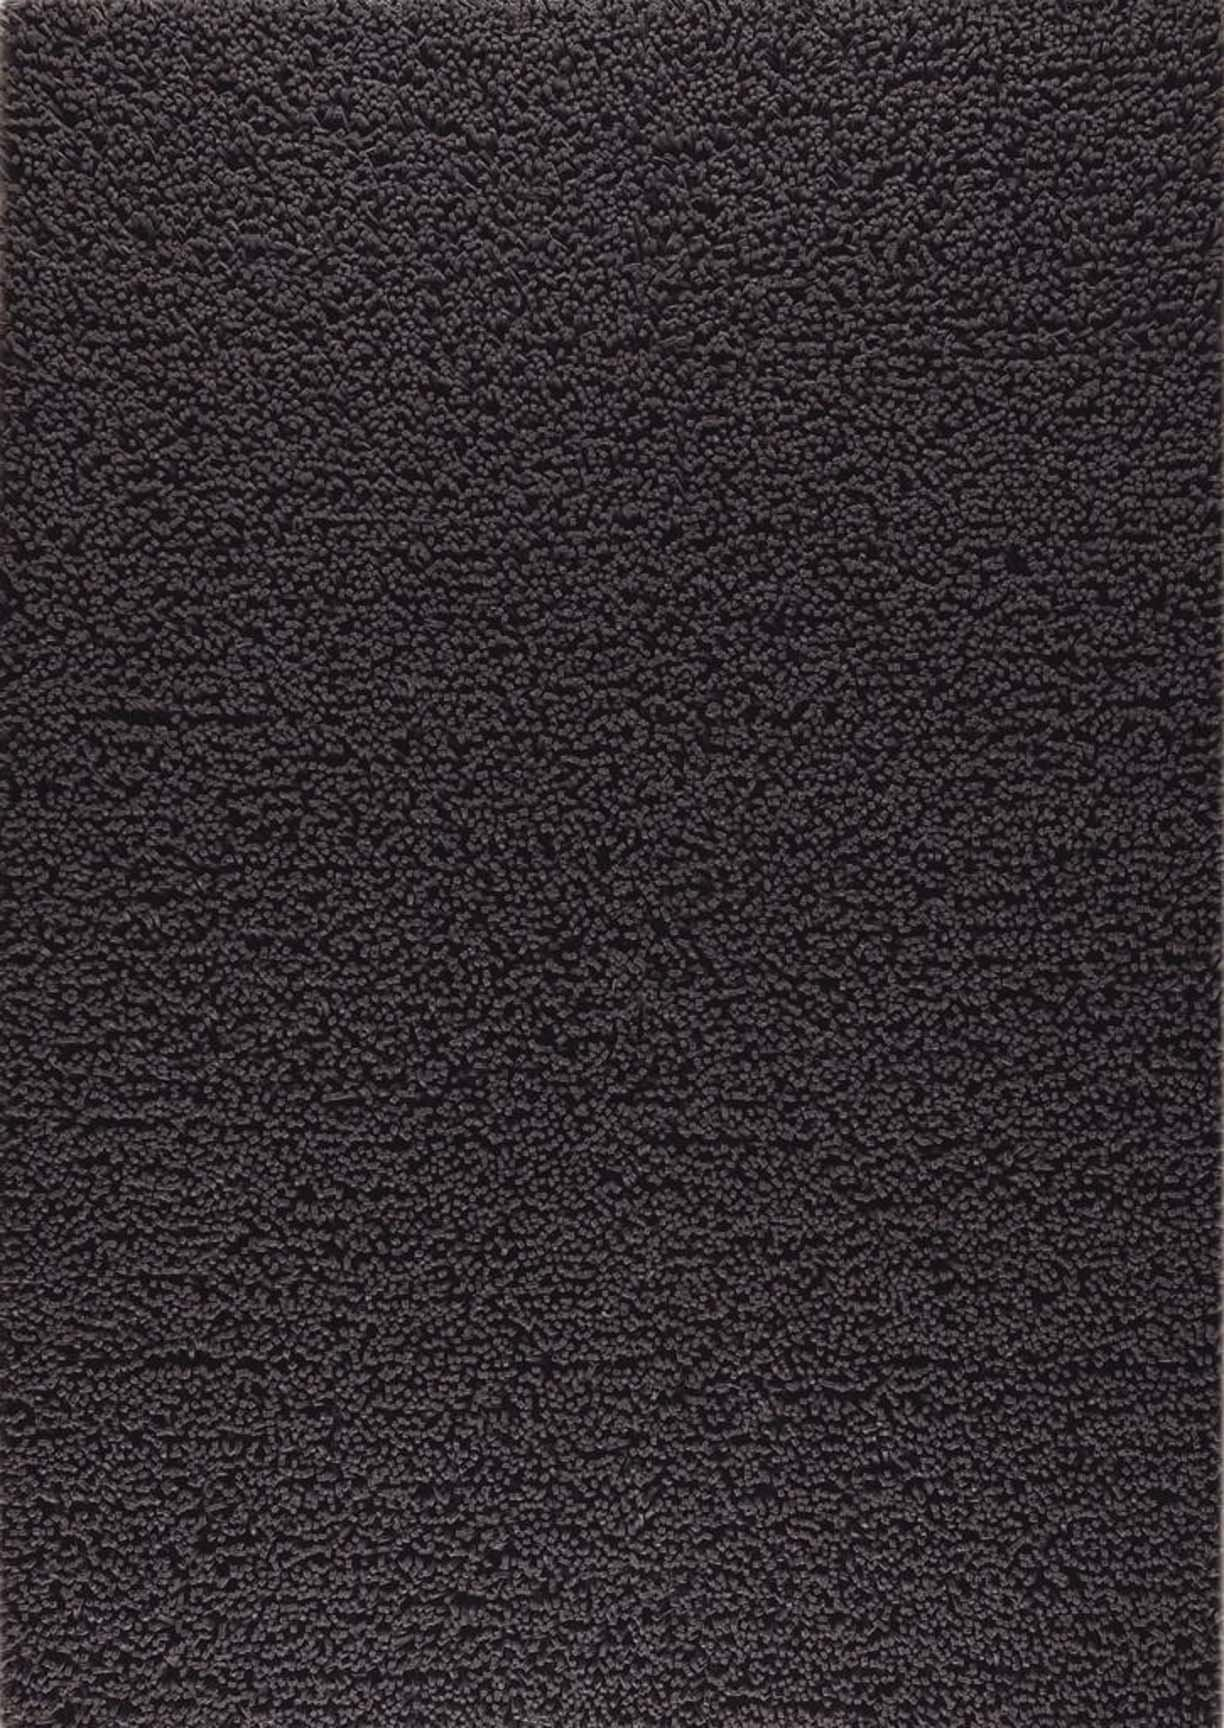 mat square area rug charcoal in 2019 texture leather texture rh pinterest com